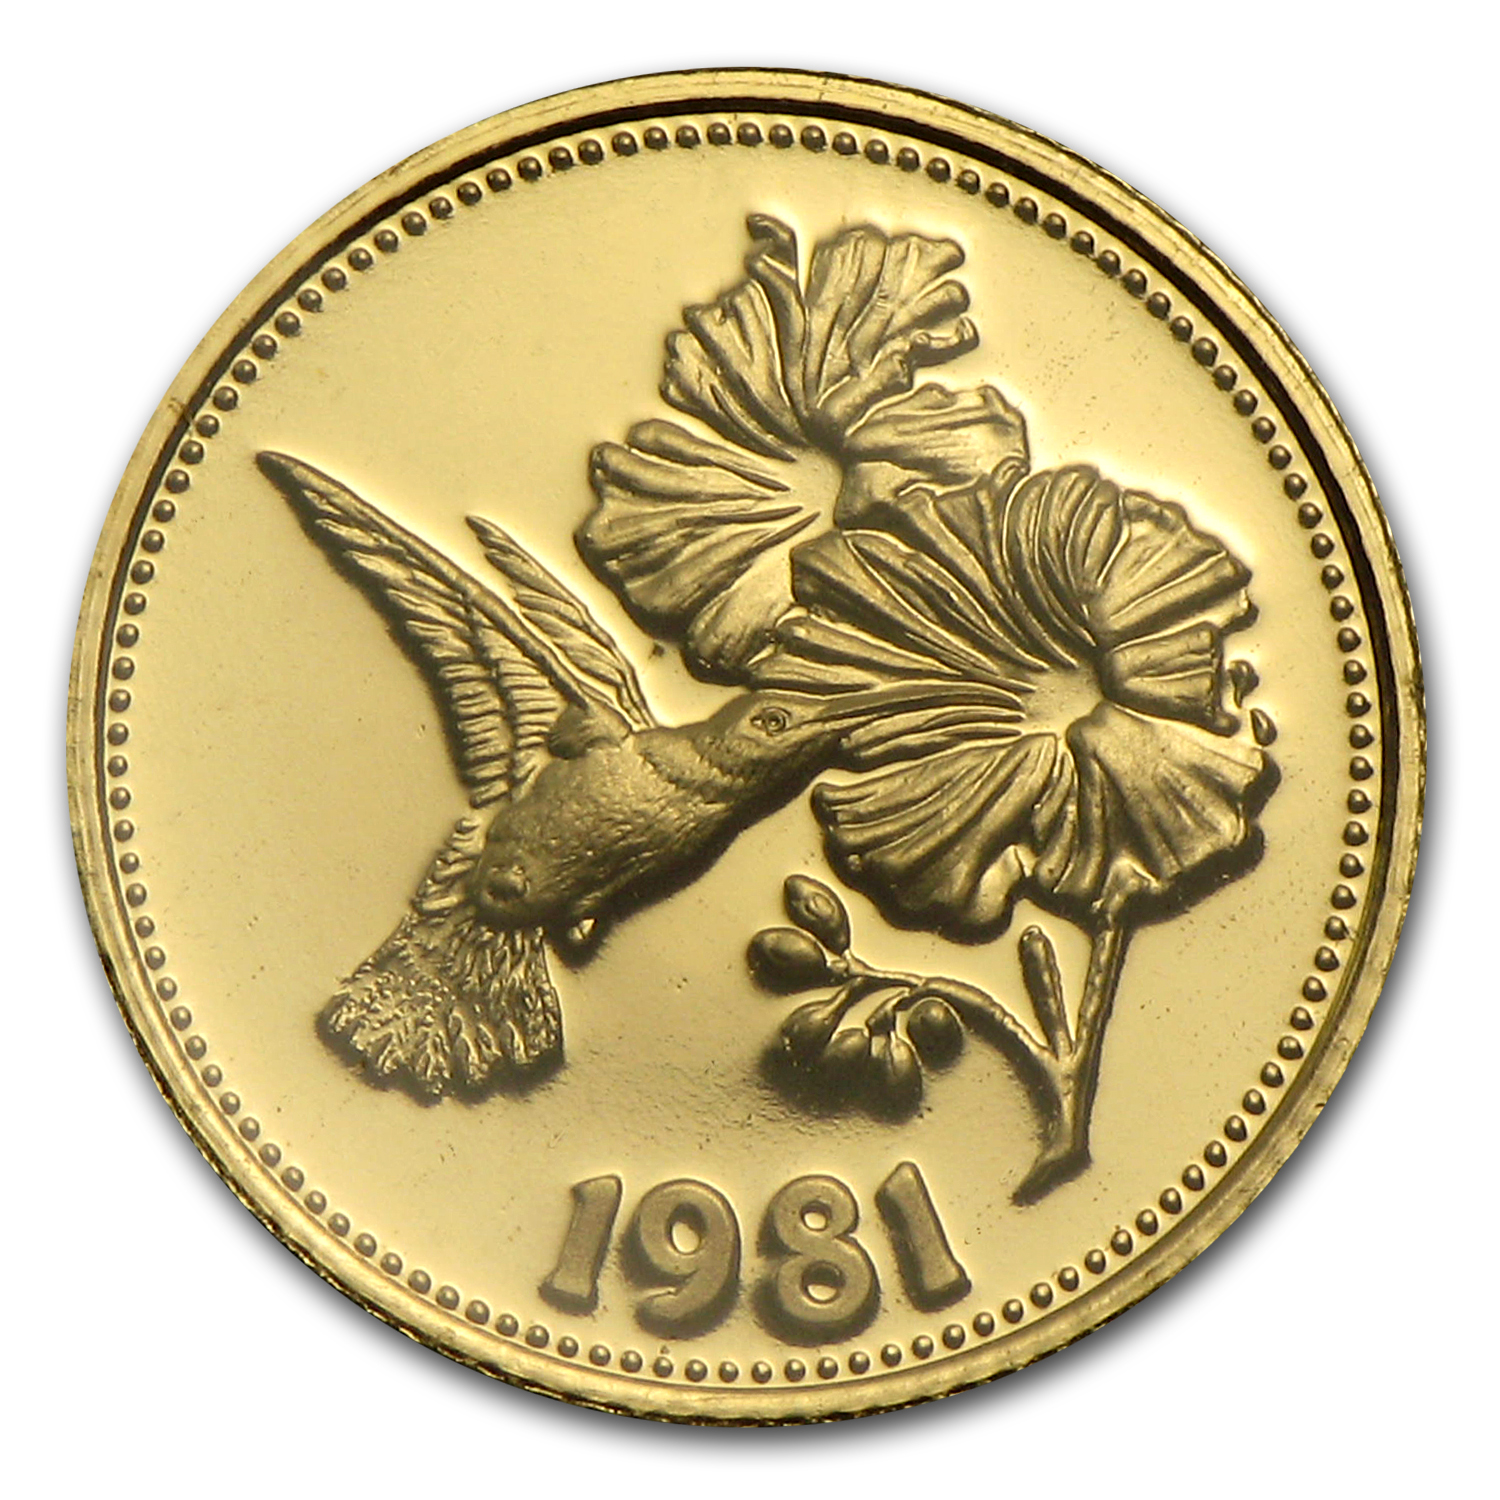 1981 Belize Proof Gold 50 Dollars Hummingbird